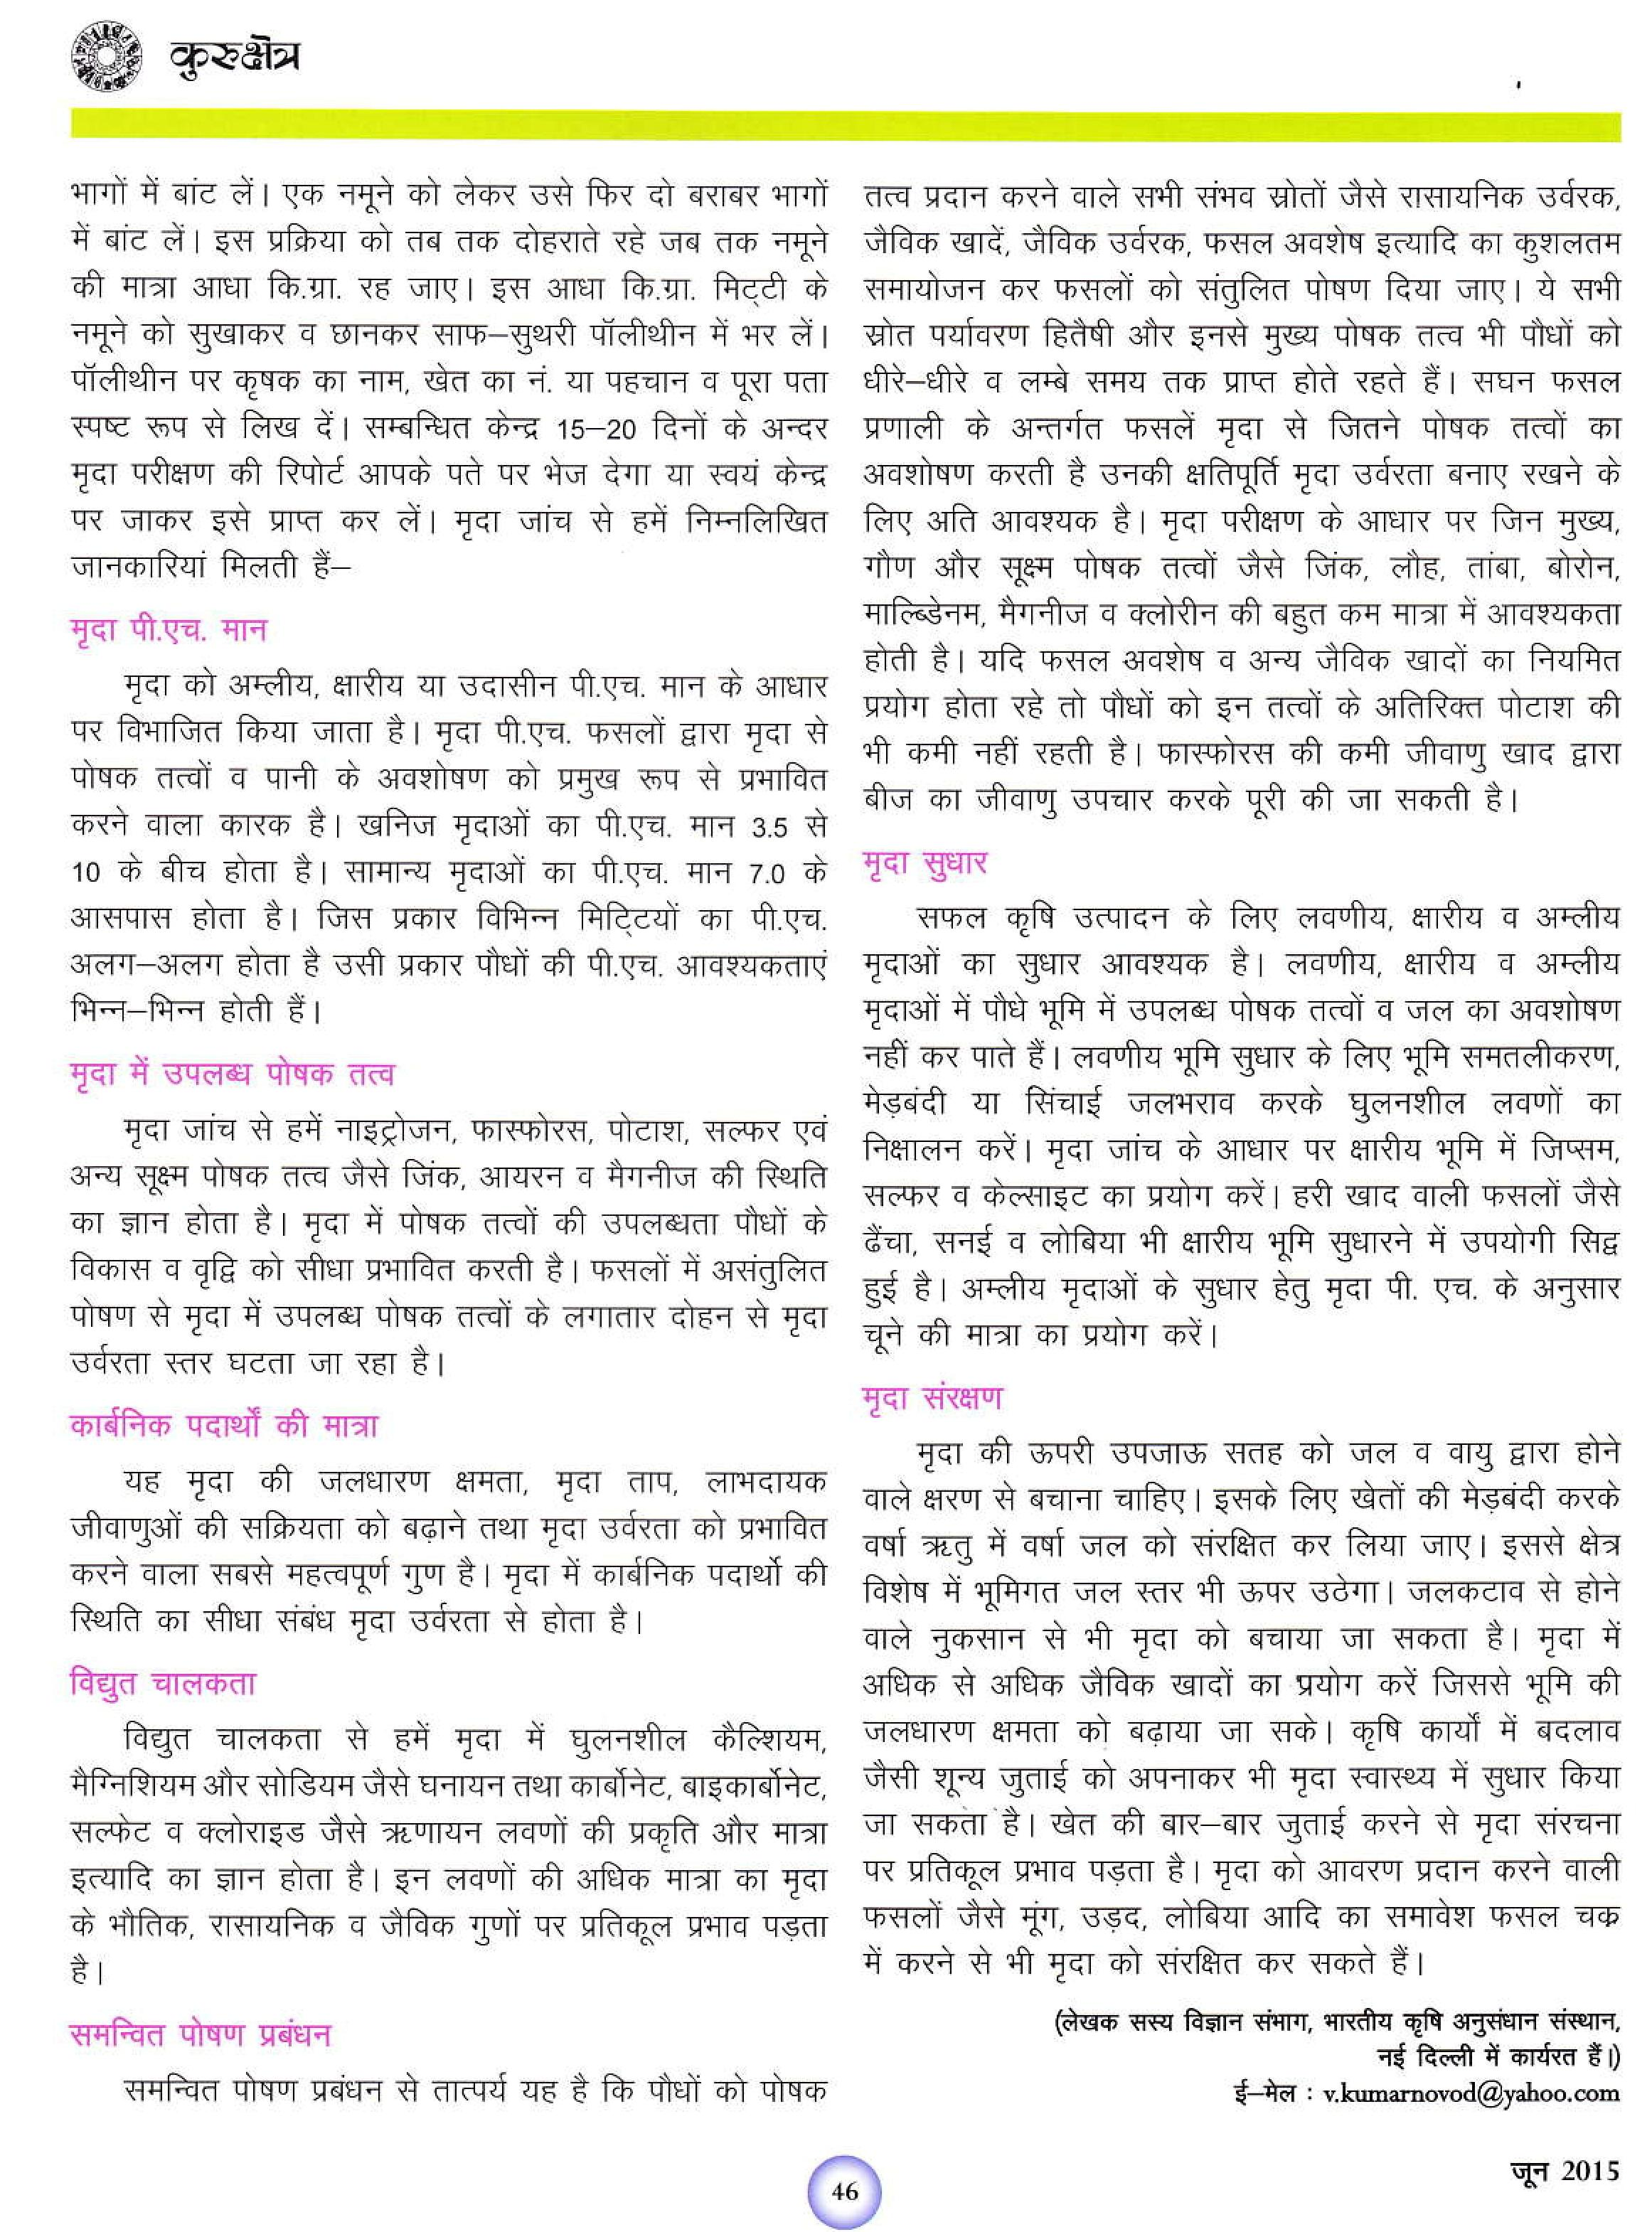 IMG_0013-page-005